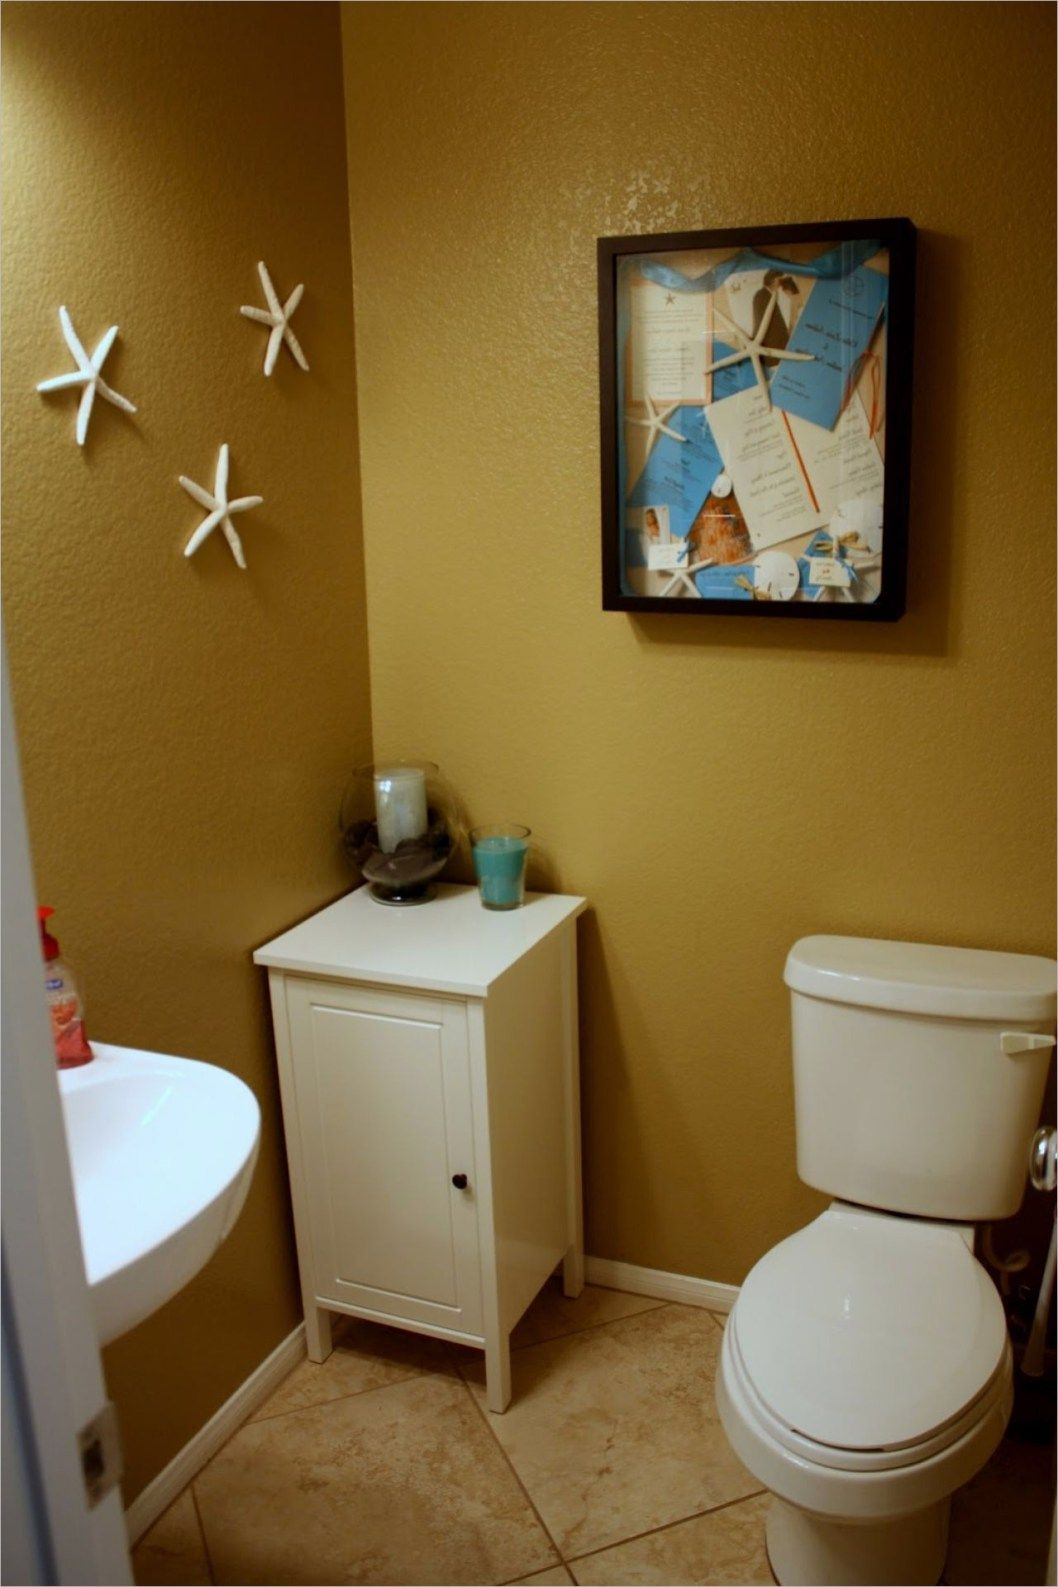 Bathroom Accessories Ideas 43 Perfect And Cheap Bathroom Accessories Decorating Ideas